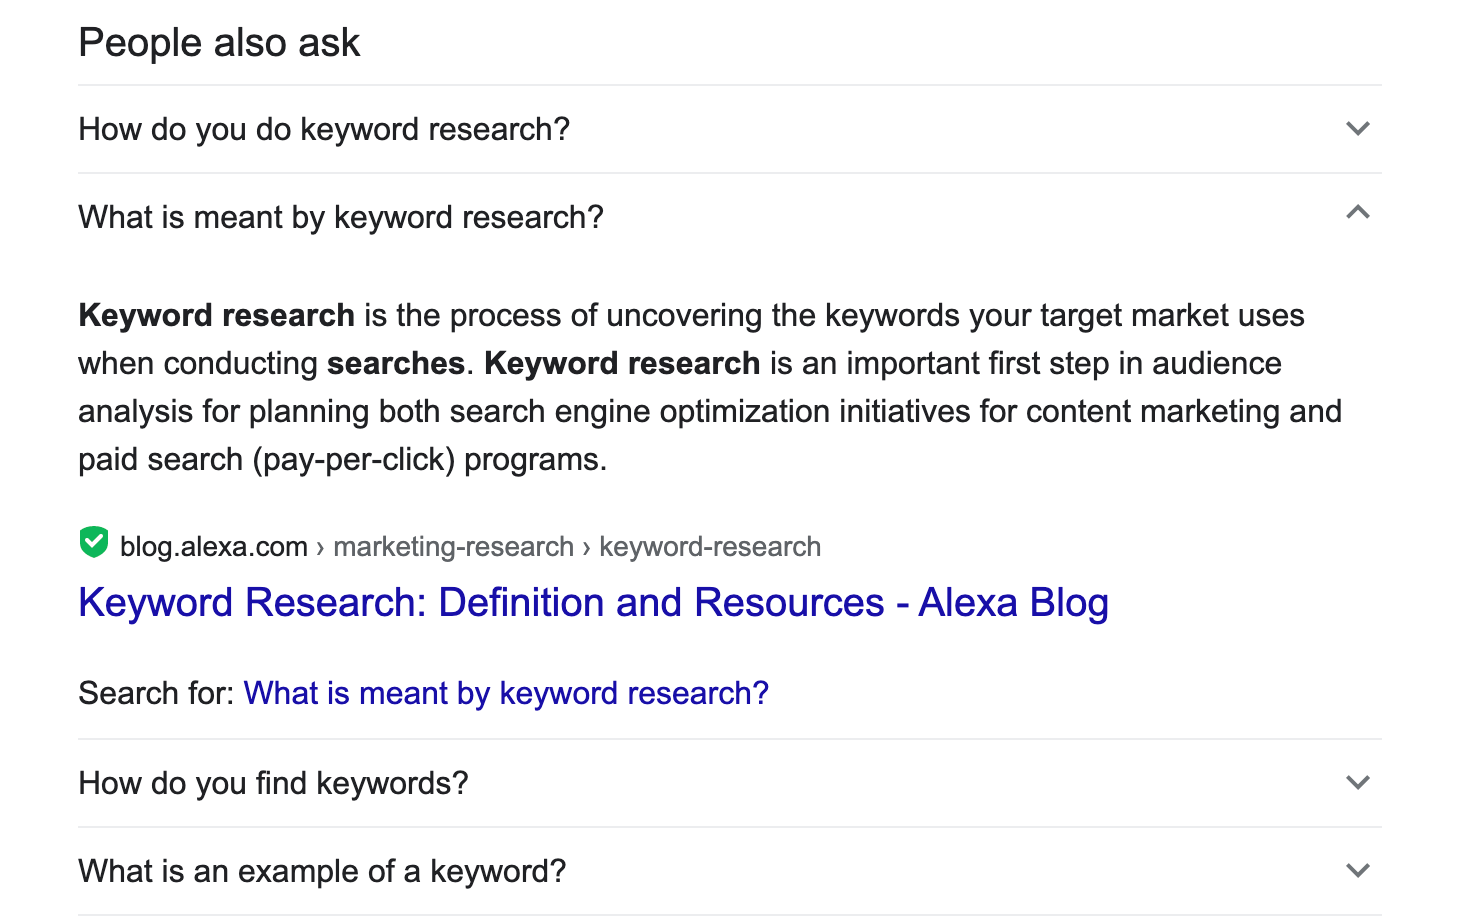 People also ask box in keyword research query